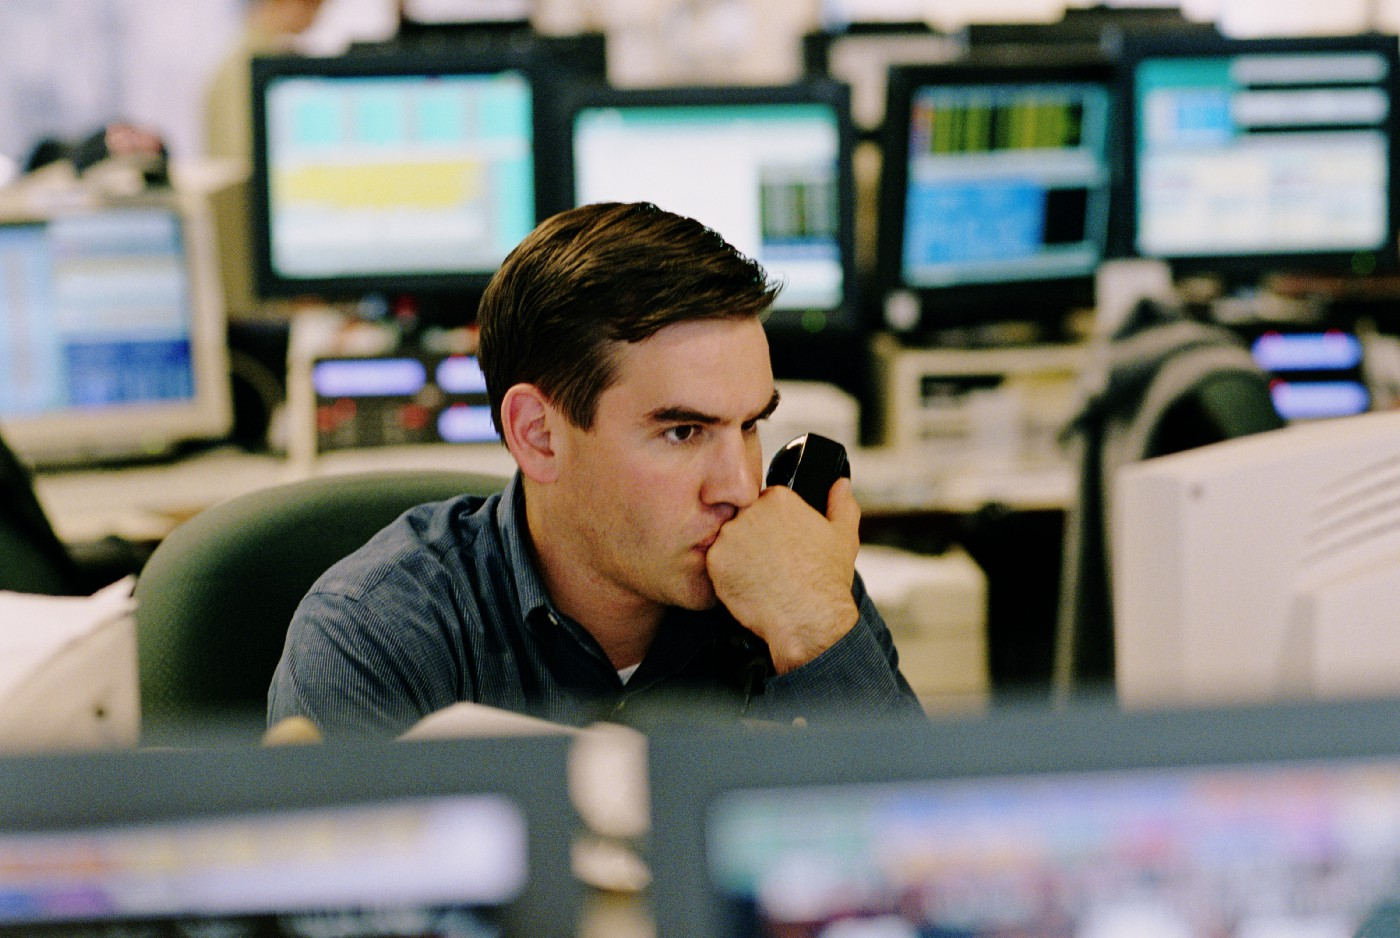 A broker contemplating and holding up a phone while watching his computer.